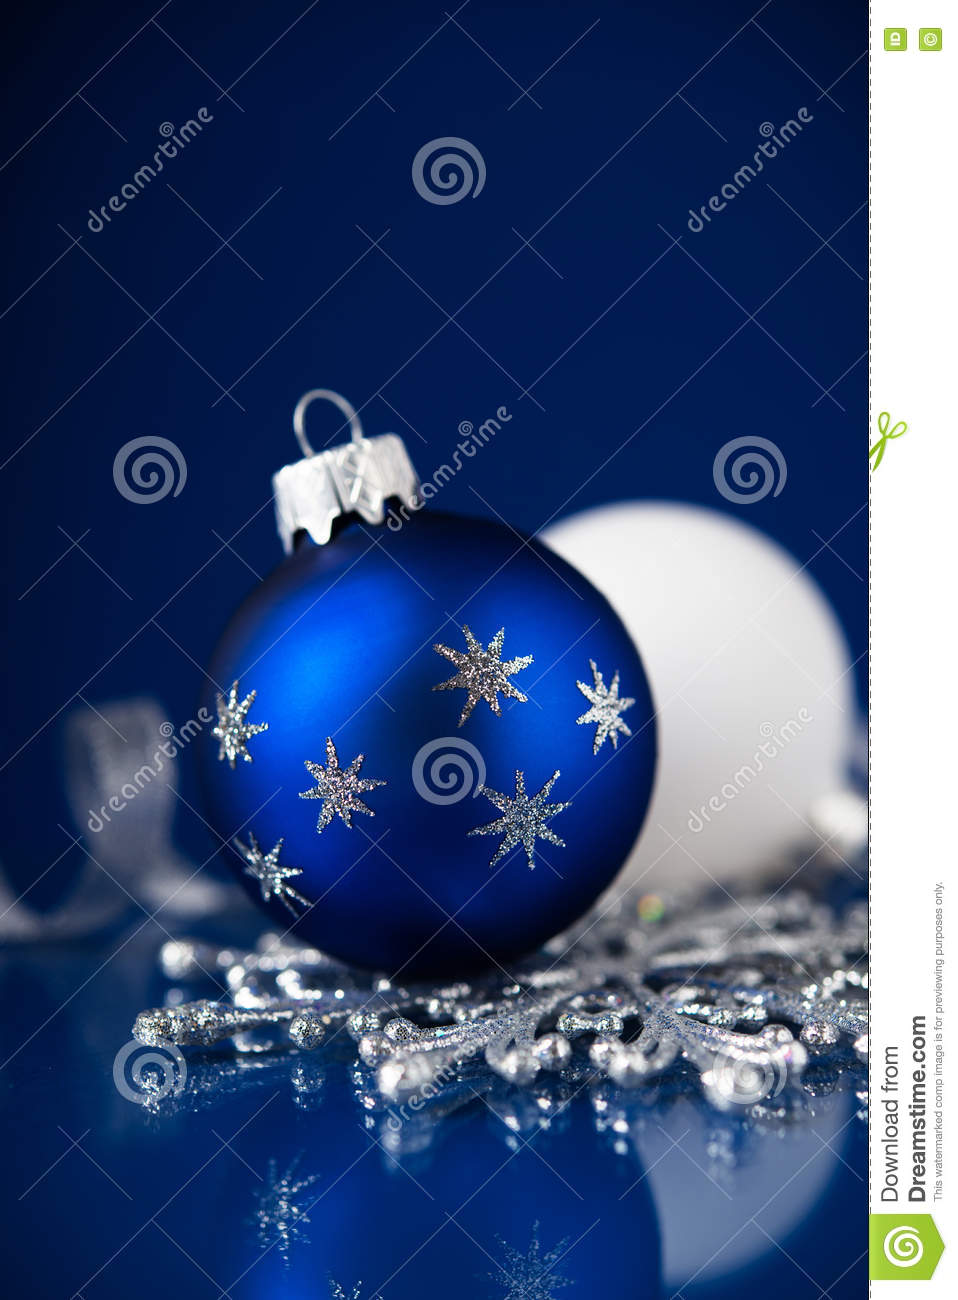 Red white and blue christmas ornaments - Silver White And Blue Christmas Ornaments On Dark Blue Background Merry Christmas Card